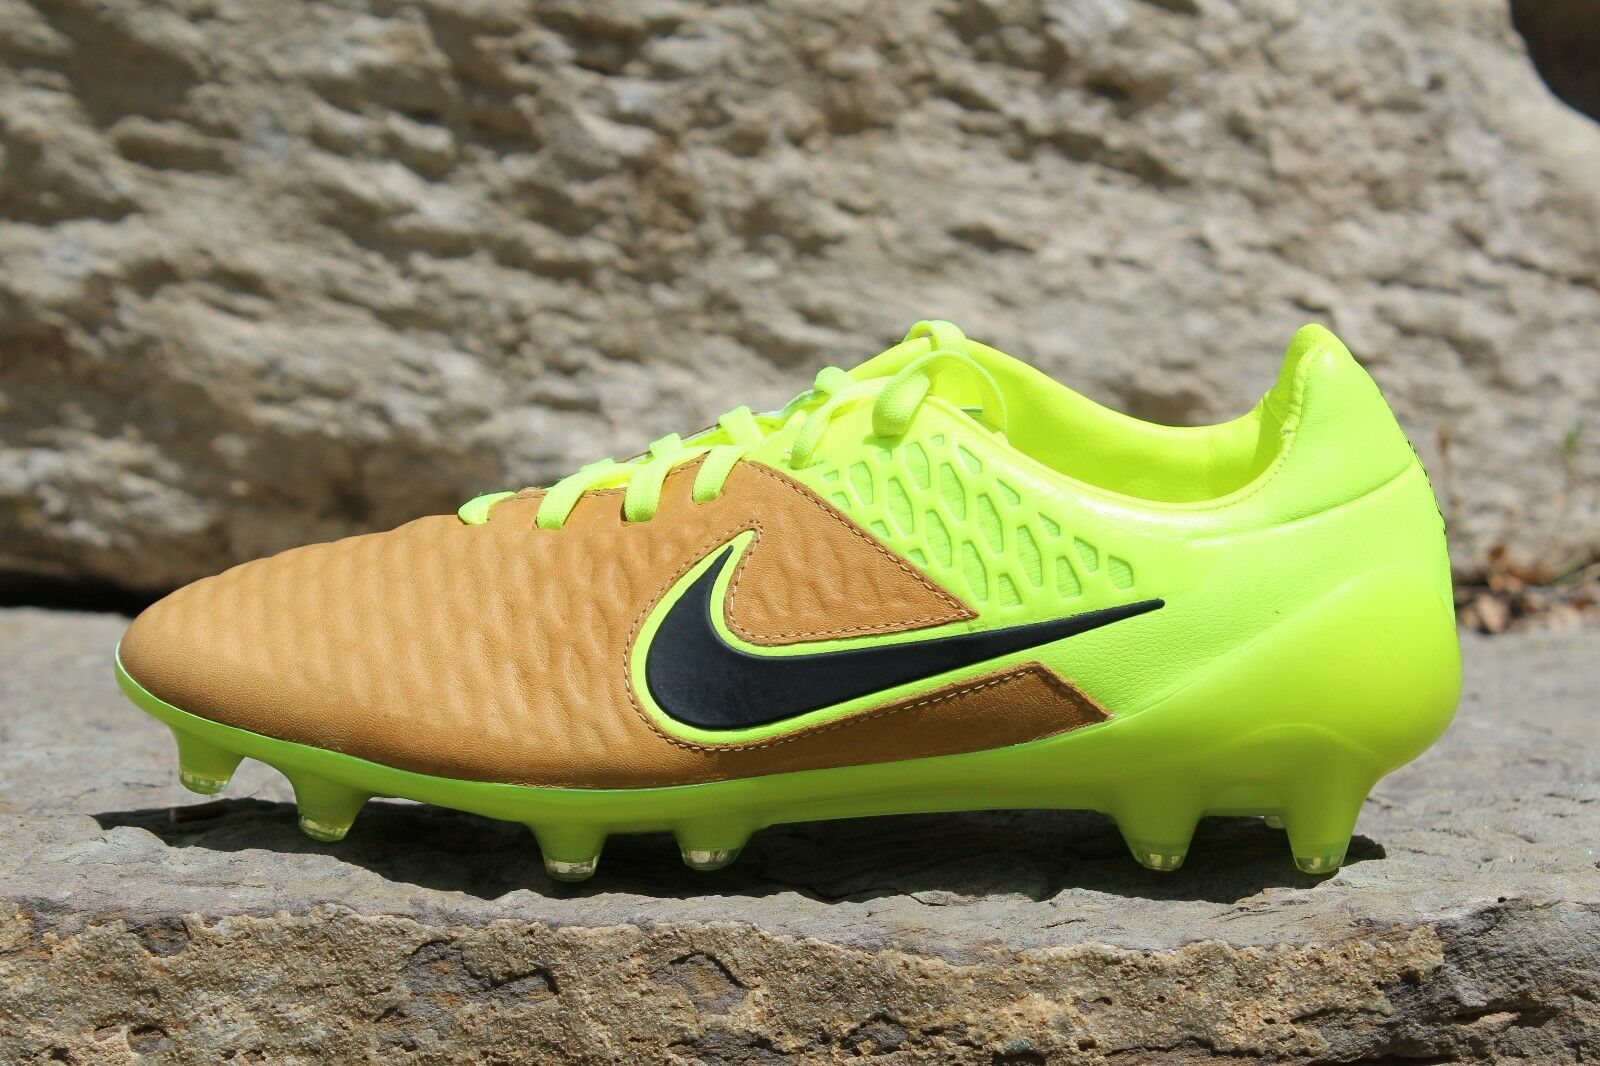 08 Mens Nike Magista Opus LTHR FG Tech Craft Soccer Cleats Volt 6.5 7 768890-707 best-selling model of the brand